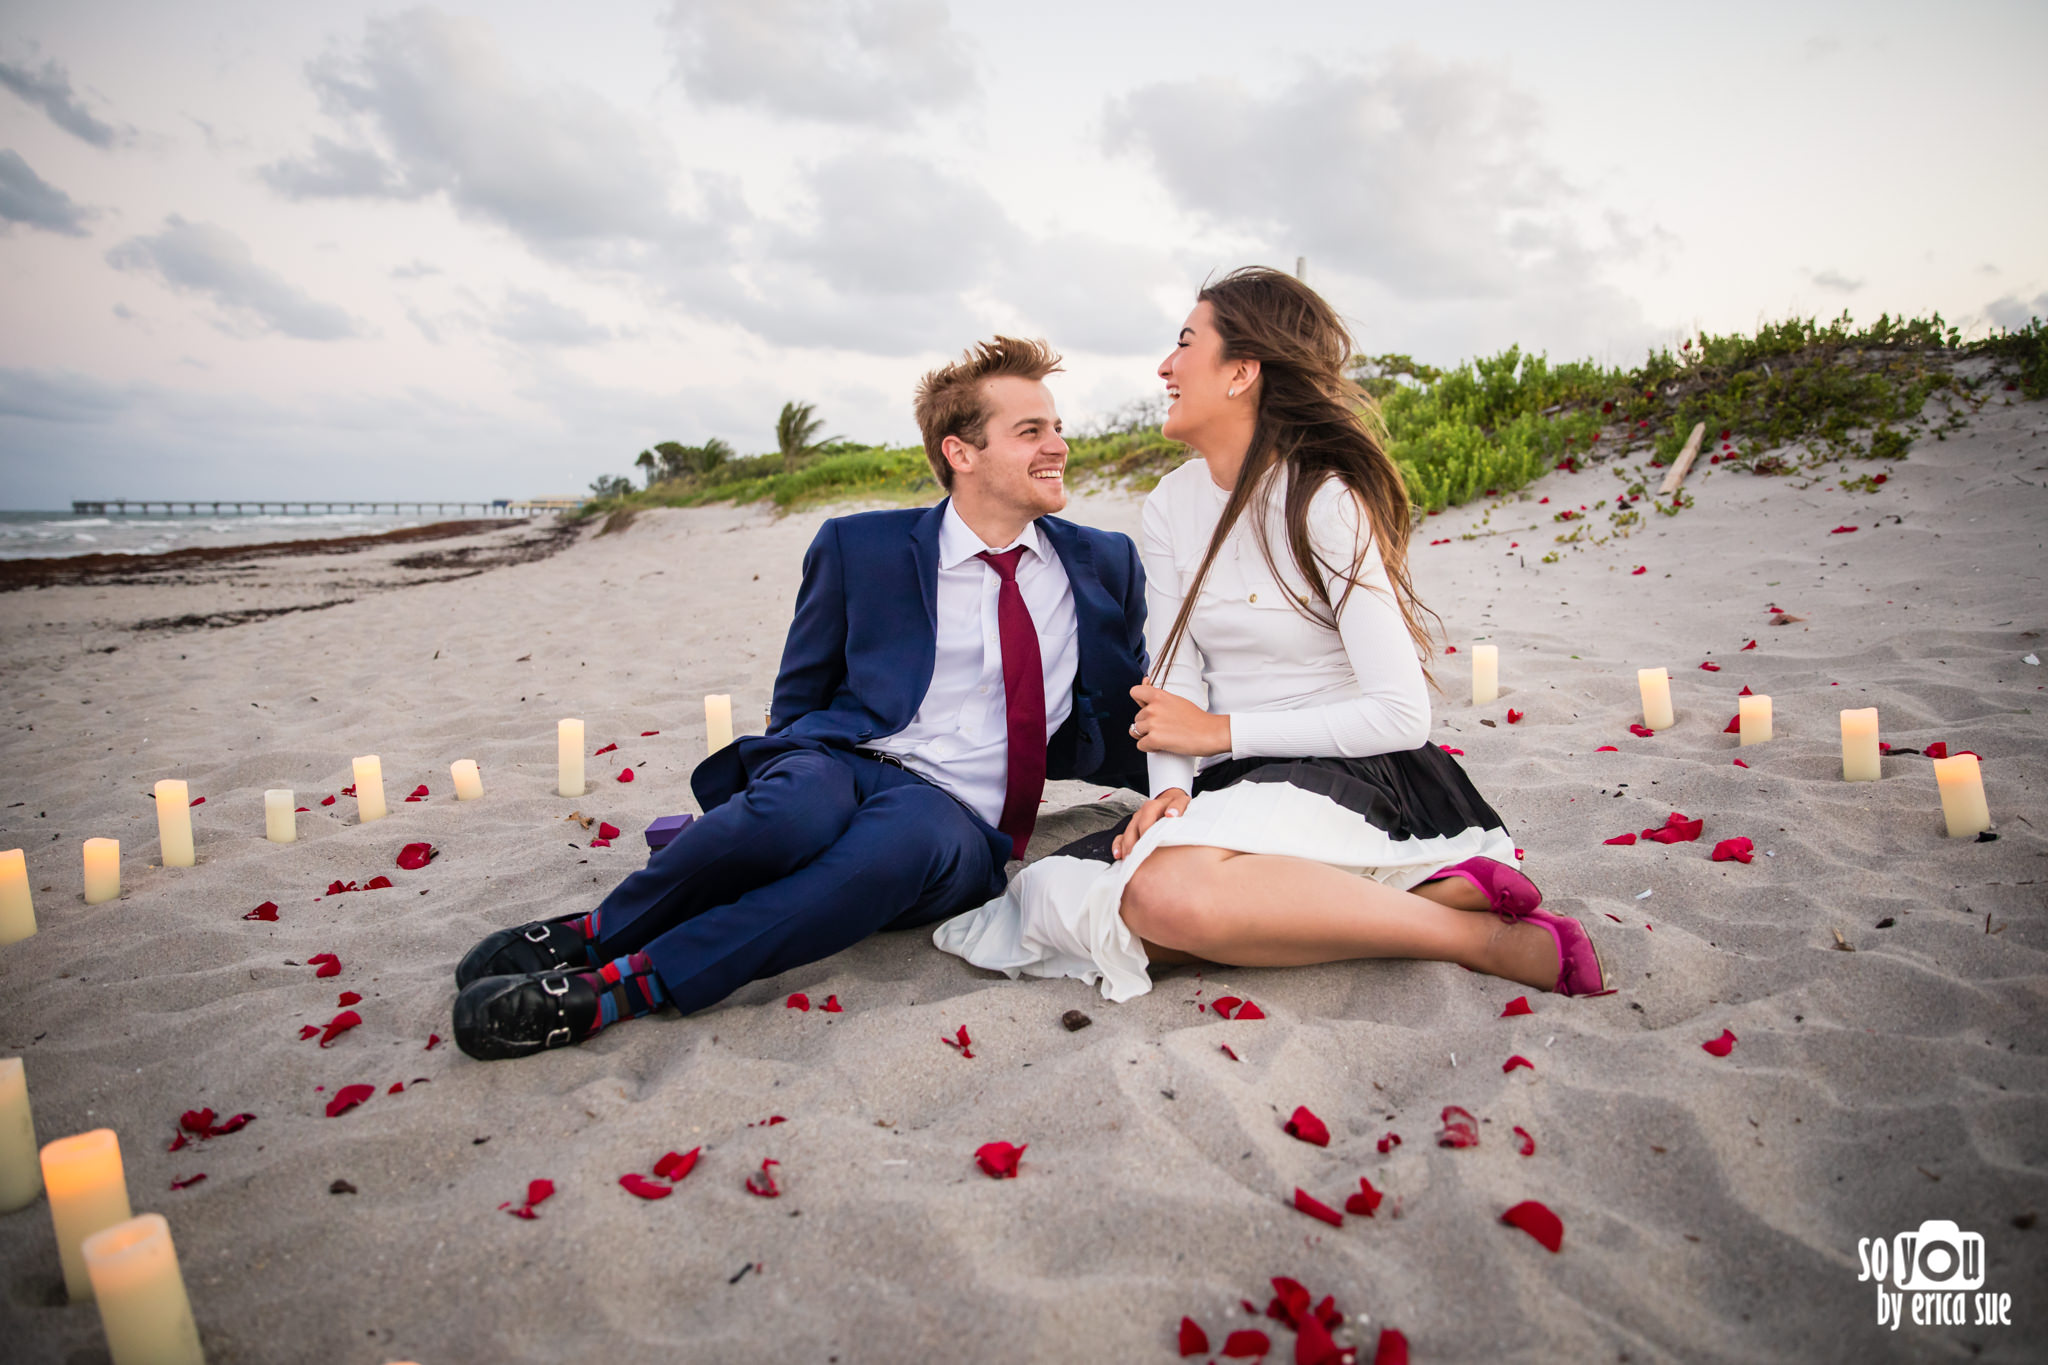 so-you-by-erica-sue-hollywood-fl-photographer-beach-engagement-flowers-candles-5090.jpg